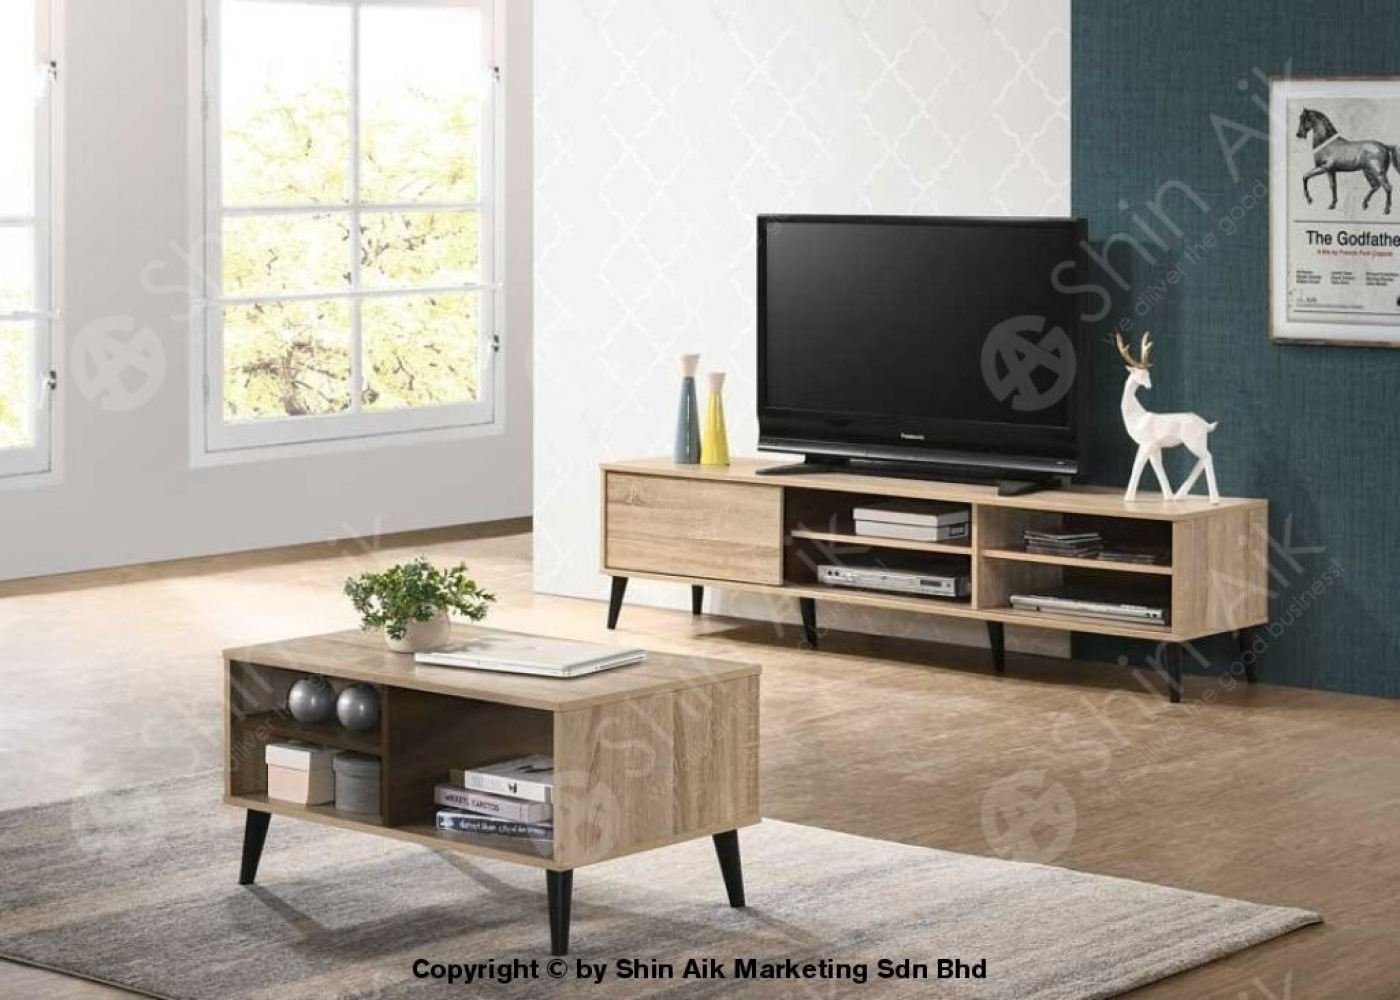 Natural & Walnut Two-Tone Mid-Century TV Cabinet (6'ft) & Coffee Table (Set) - SA1655TV&CT